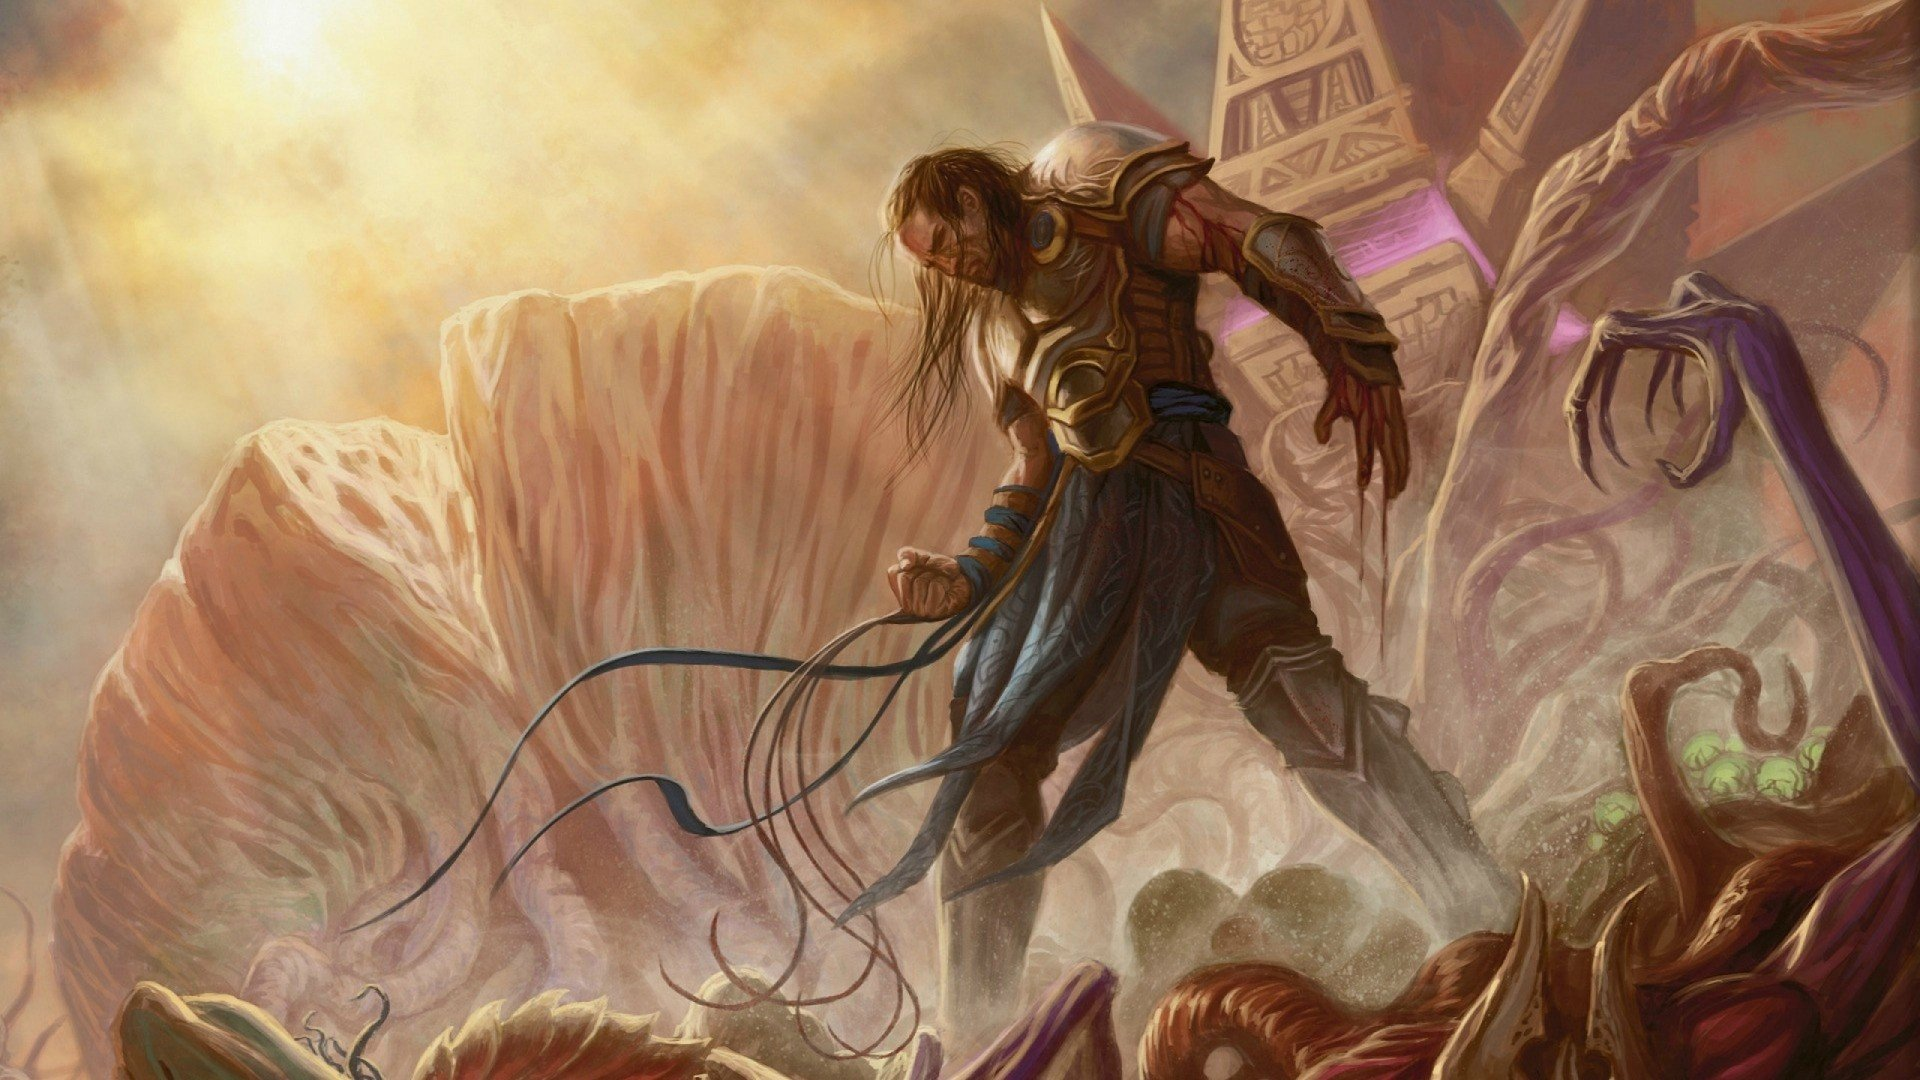 Magic: The Gathering Netflix series revealed by Russo Brothers at Comic Con